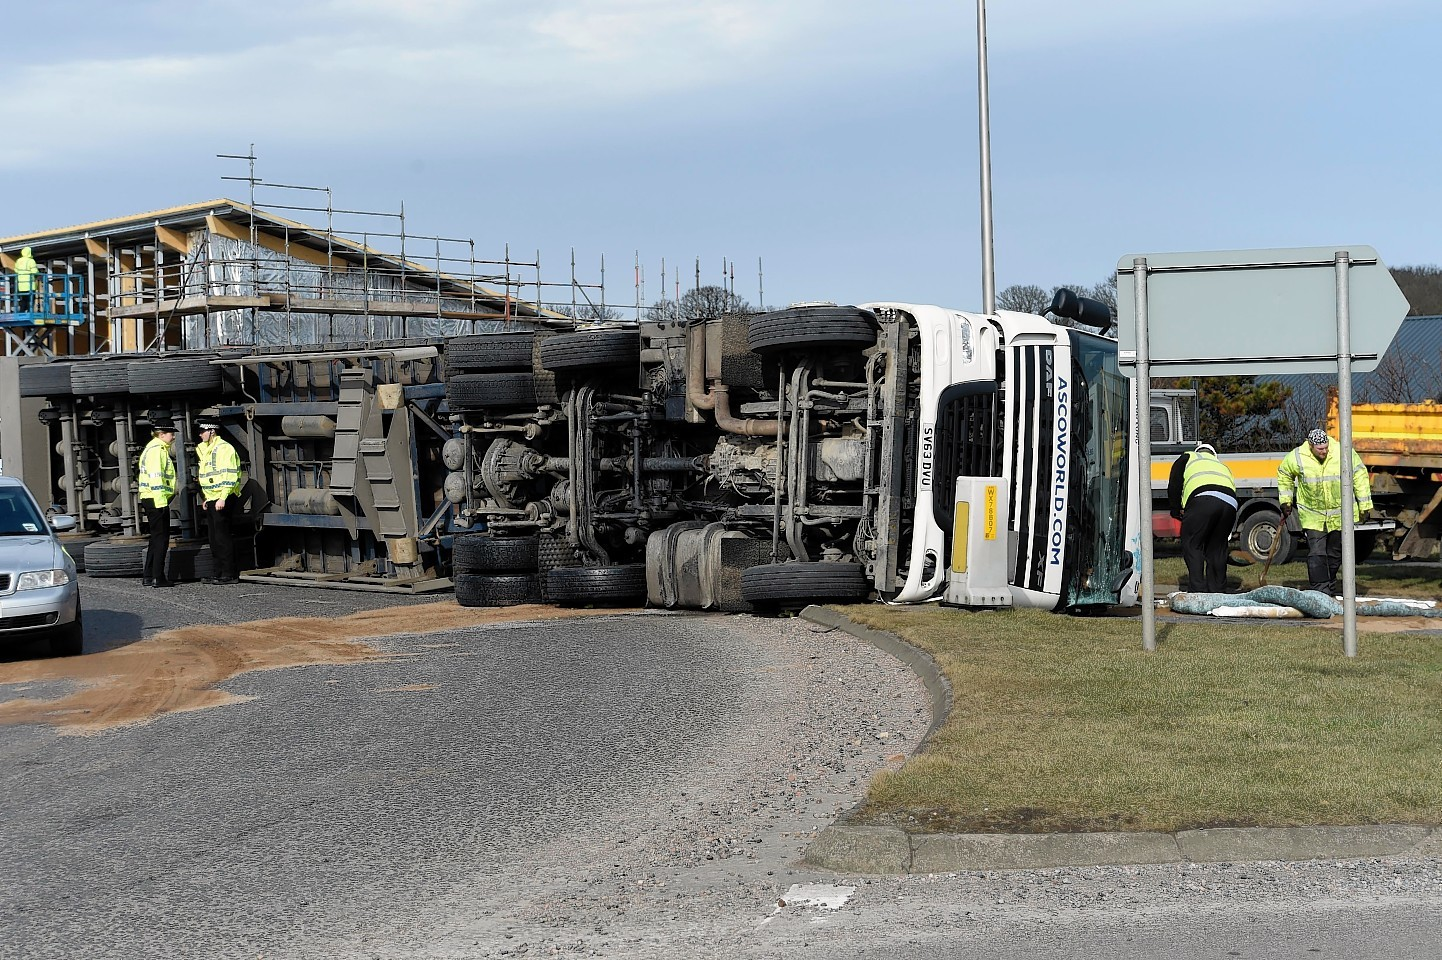 The lorry was not carrying a load when it overturned.